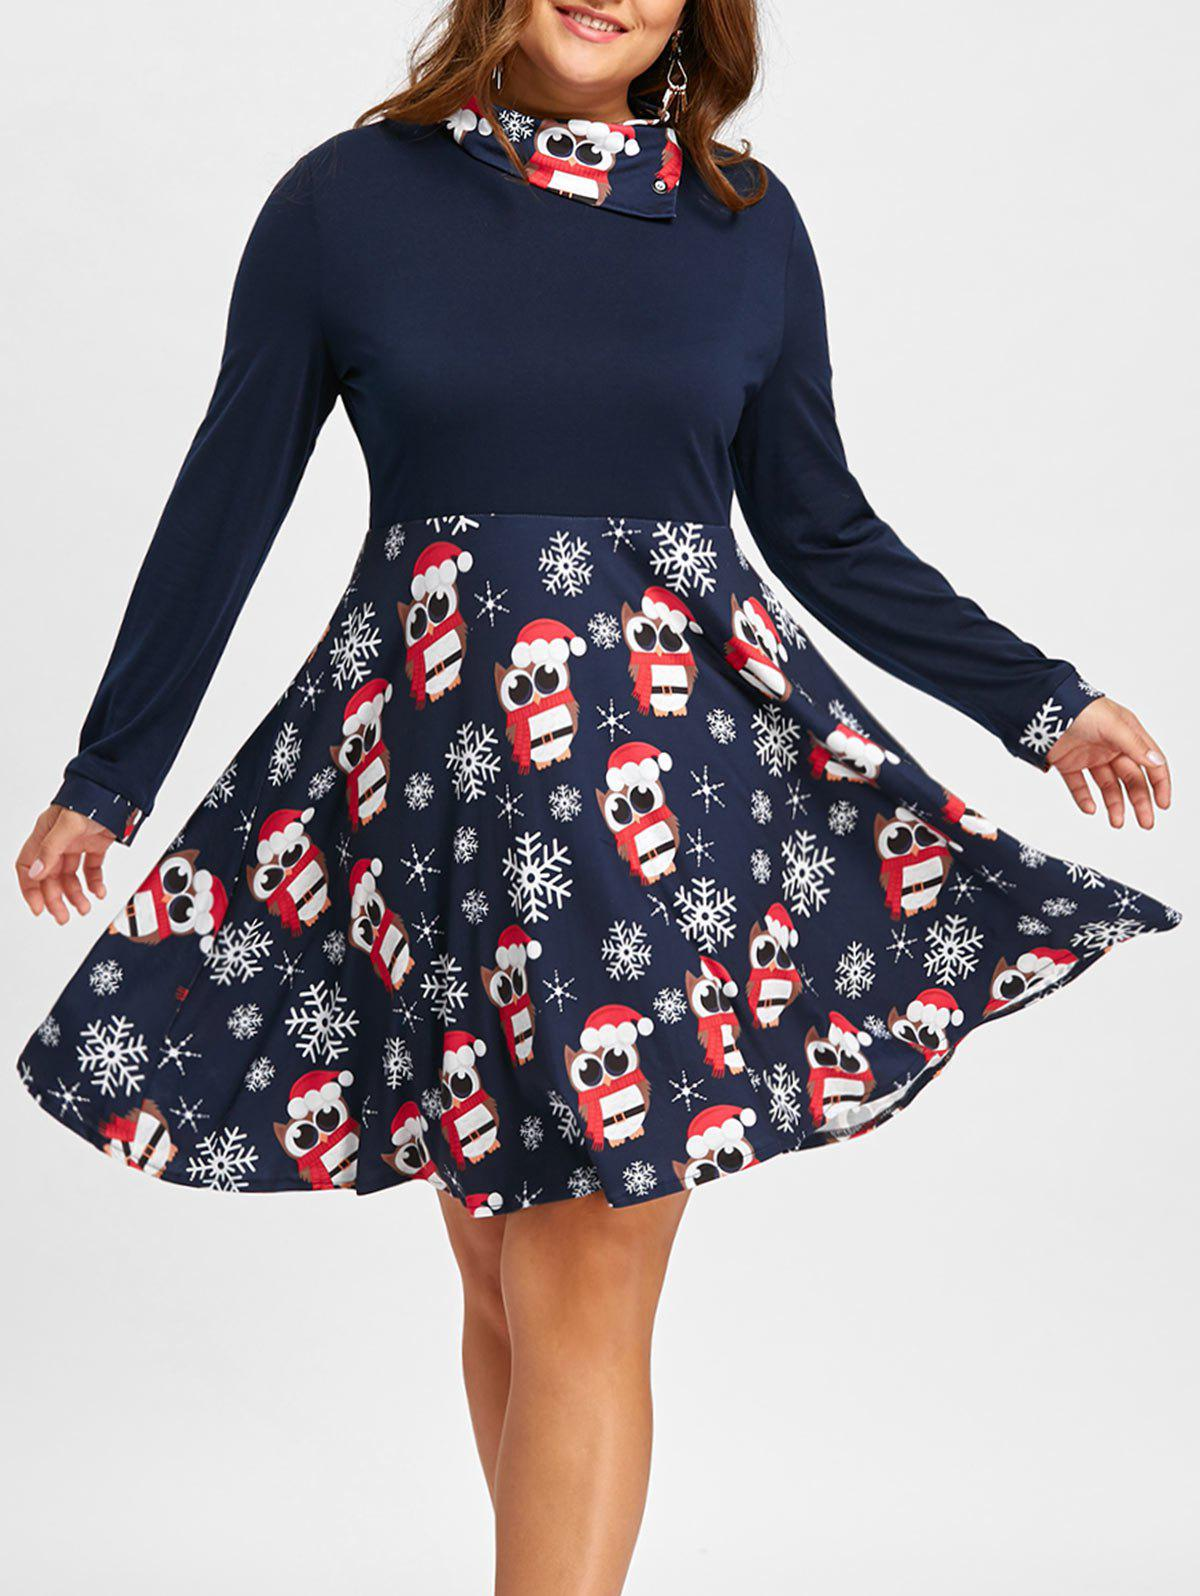 Christmas Owl Snowflake Plus Size Long Sleeve DressWOMEN<br><br>Size: 3XL; Color: BLUE; Style: Cute; Material: Polyester,Spandex; Silhouette: A-Line; Dresses Length: Mini; Neckline: Mock Neck; Sleeve Length: Long Sleeves; Pattern Type: Skull; With Belt: No; Season: Fall,Spring; Weight: 0.4200kg; Package Contents: 1 x Dress;